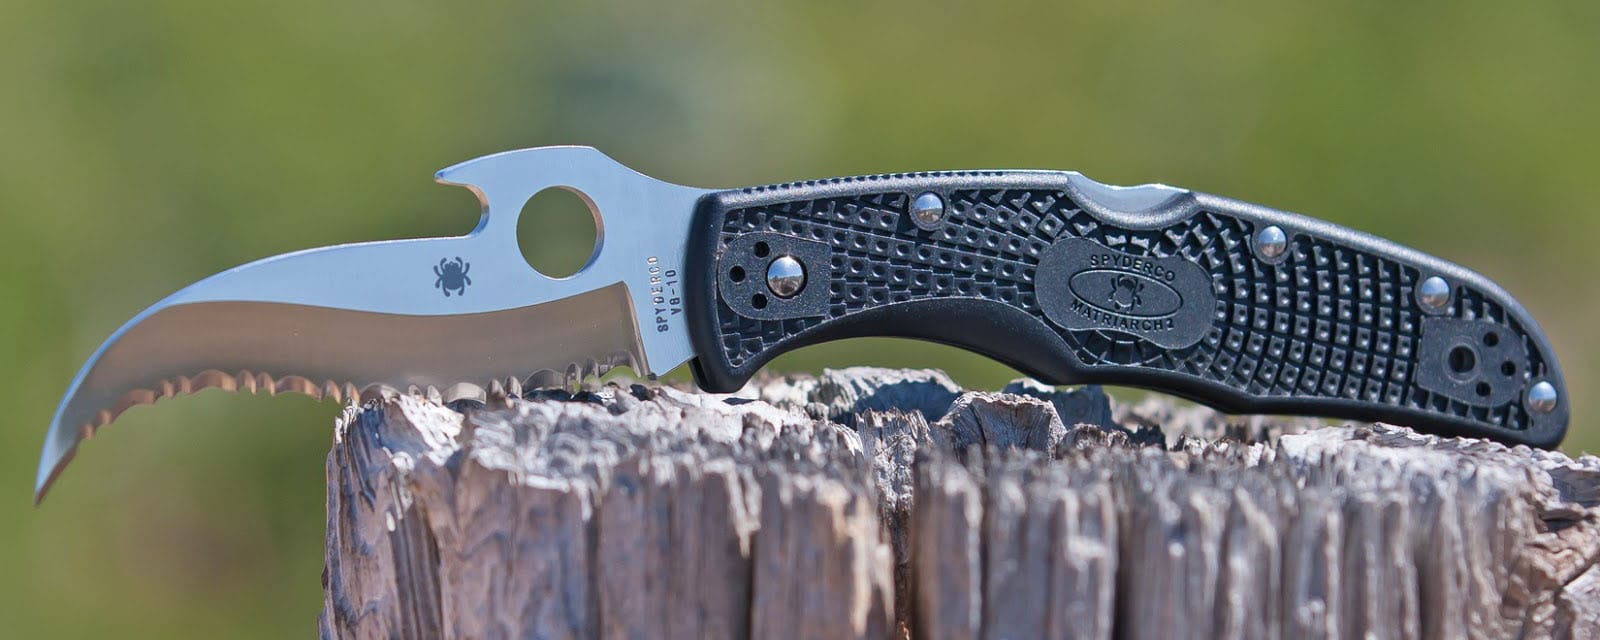 Best Spyderco Knife For Self Defense & Hunting 2019